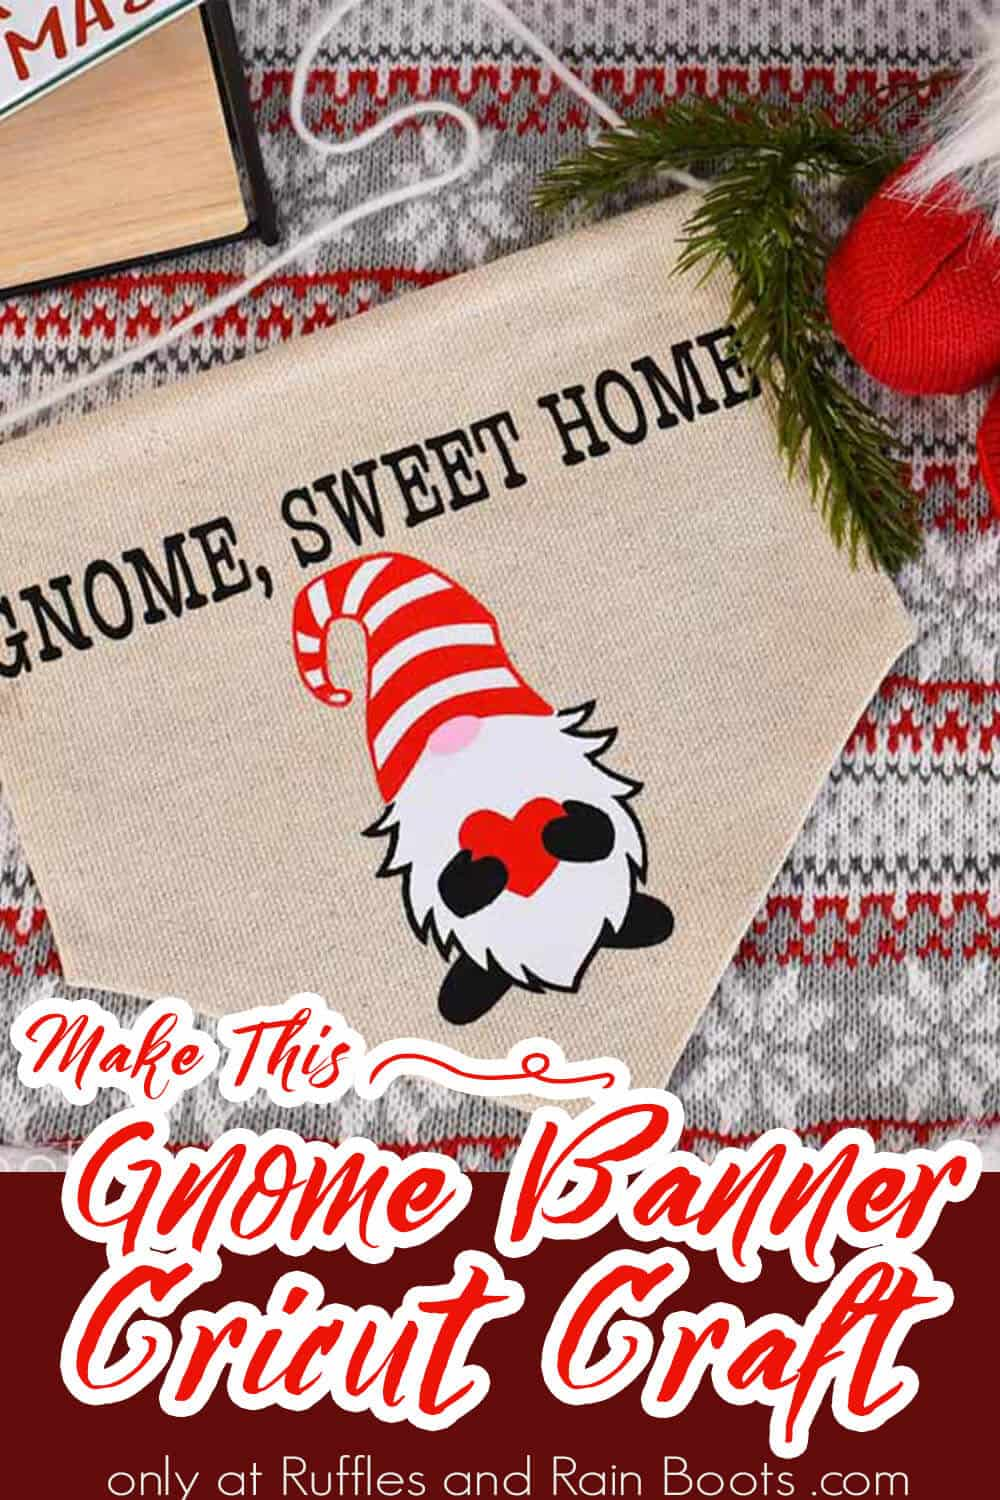 gnome craft holiday banner with text which reads make this gnome banner cricut craft